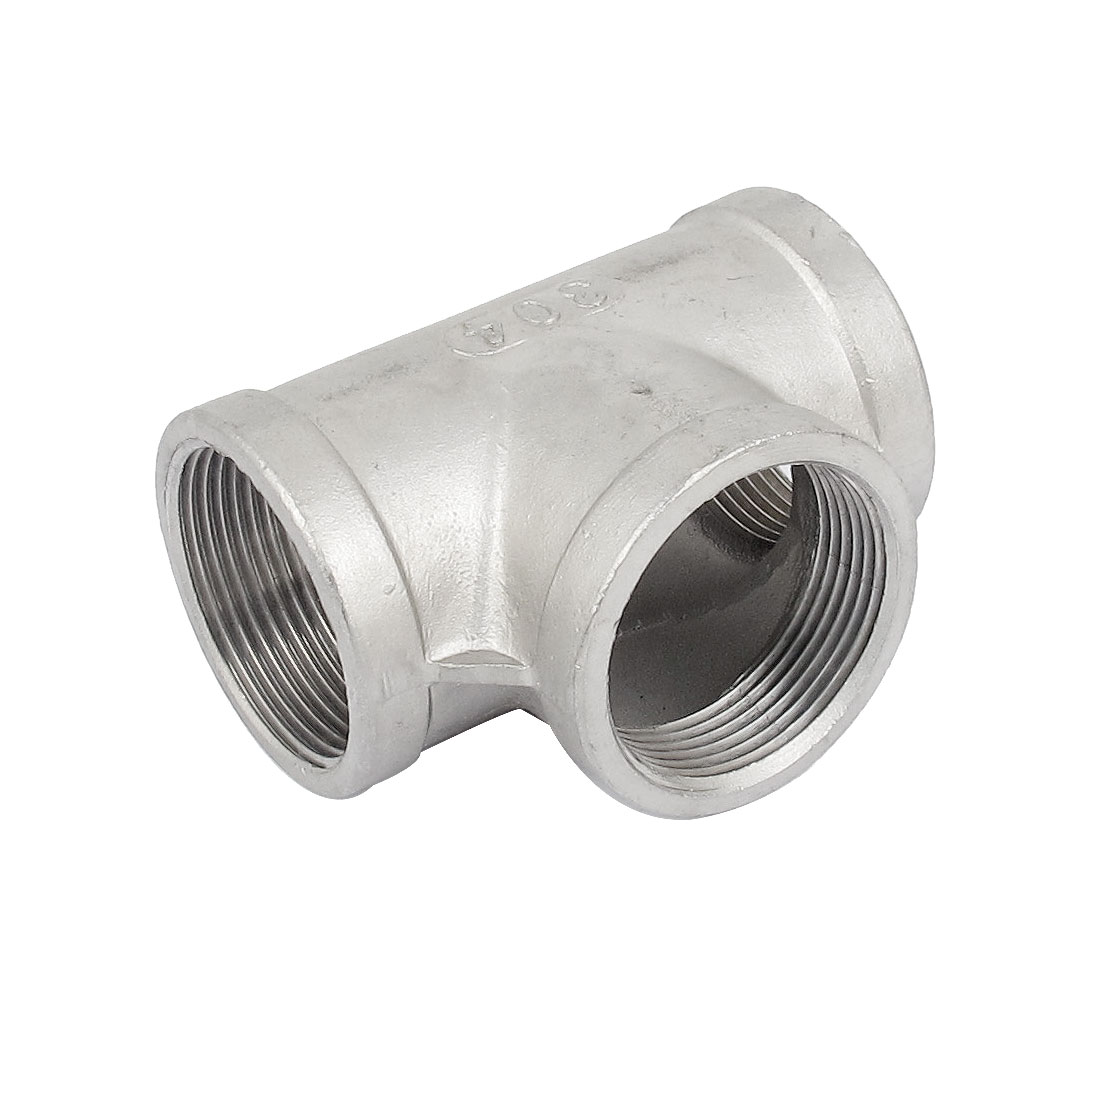 1 1/2 BSP 3 Way 304 Stainless Steel Pipe Fitting Threaded Biodiesel Gray